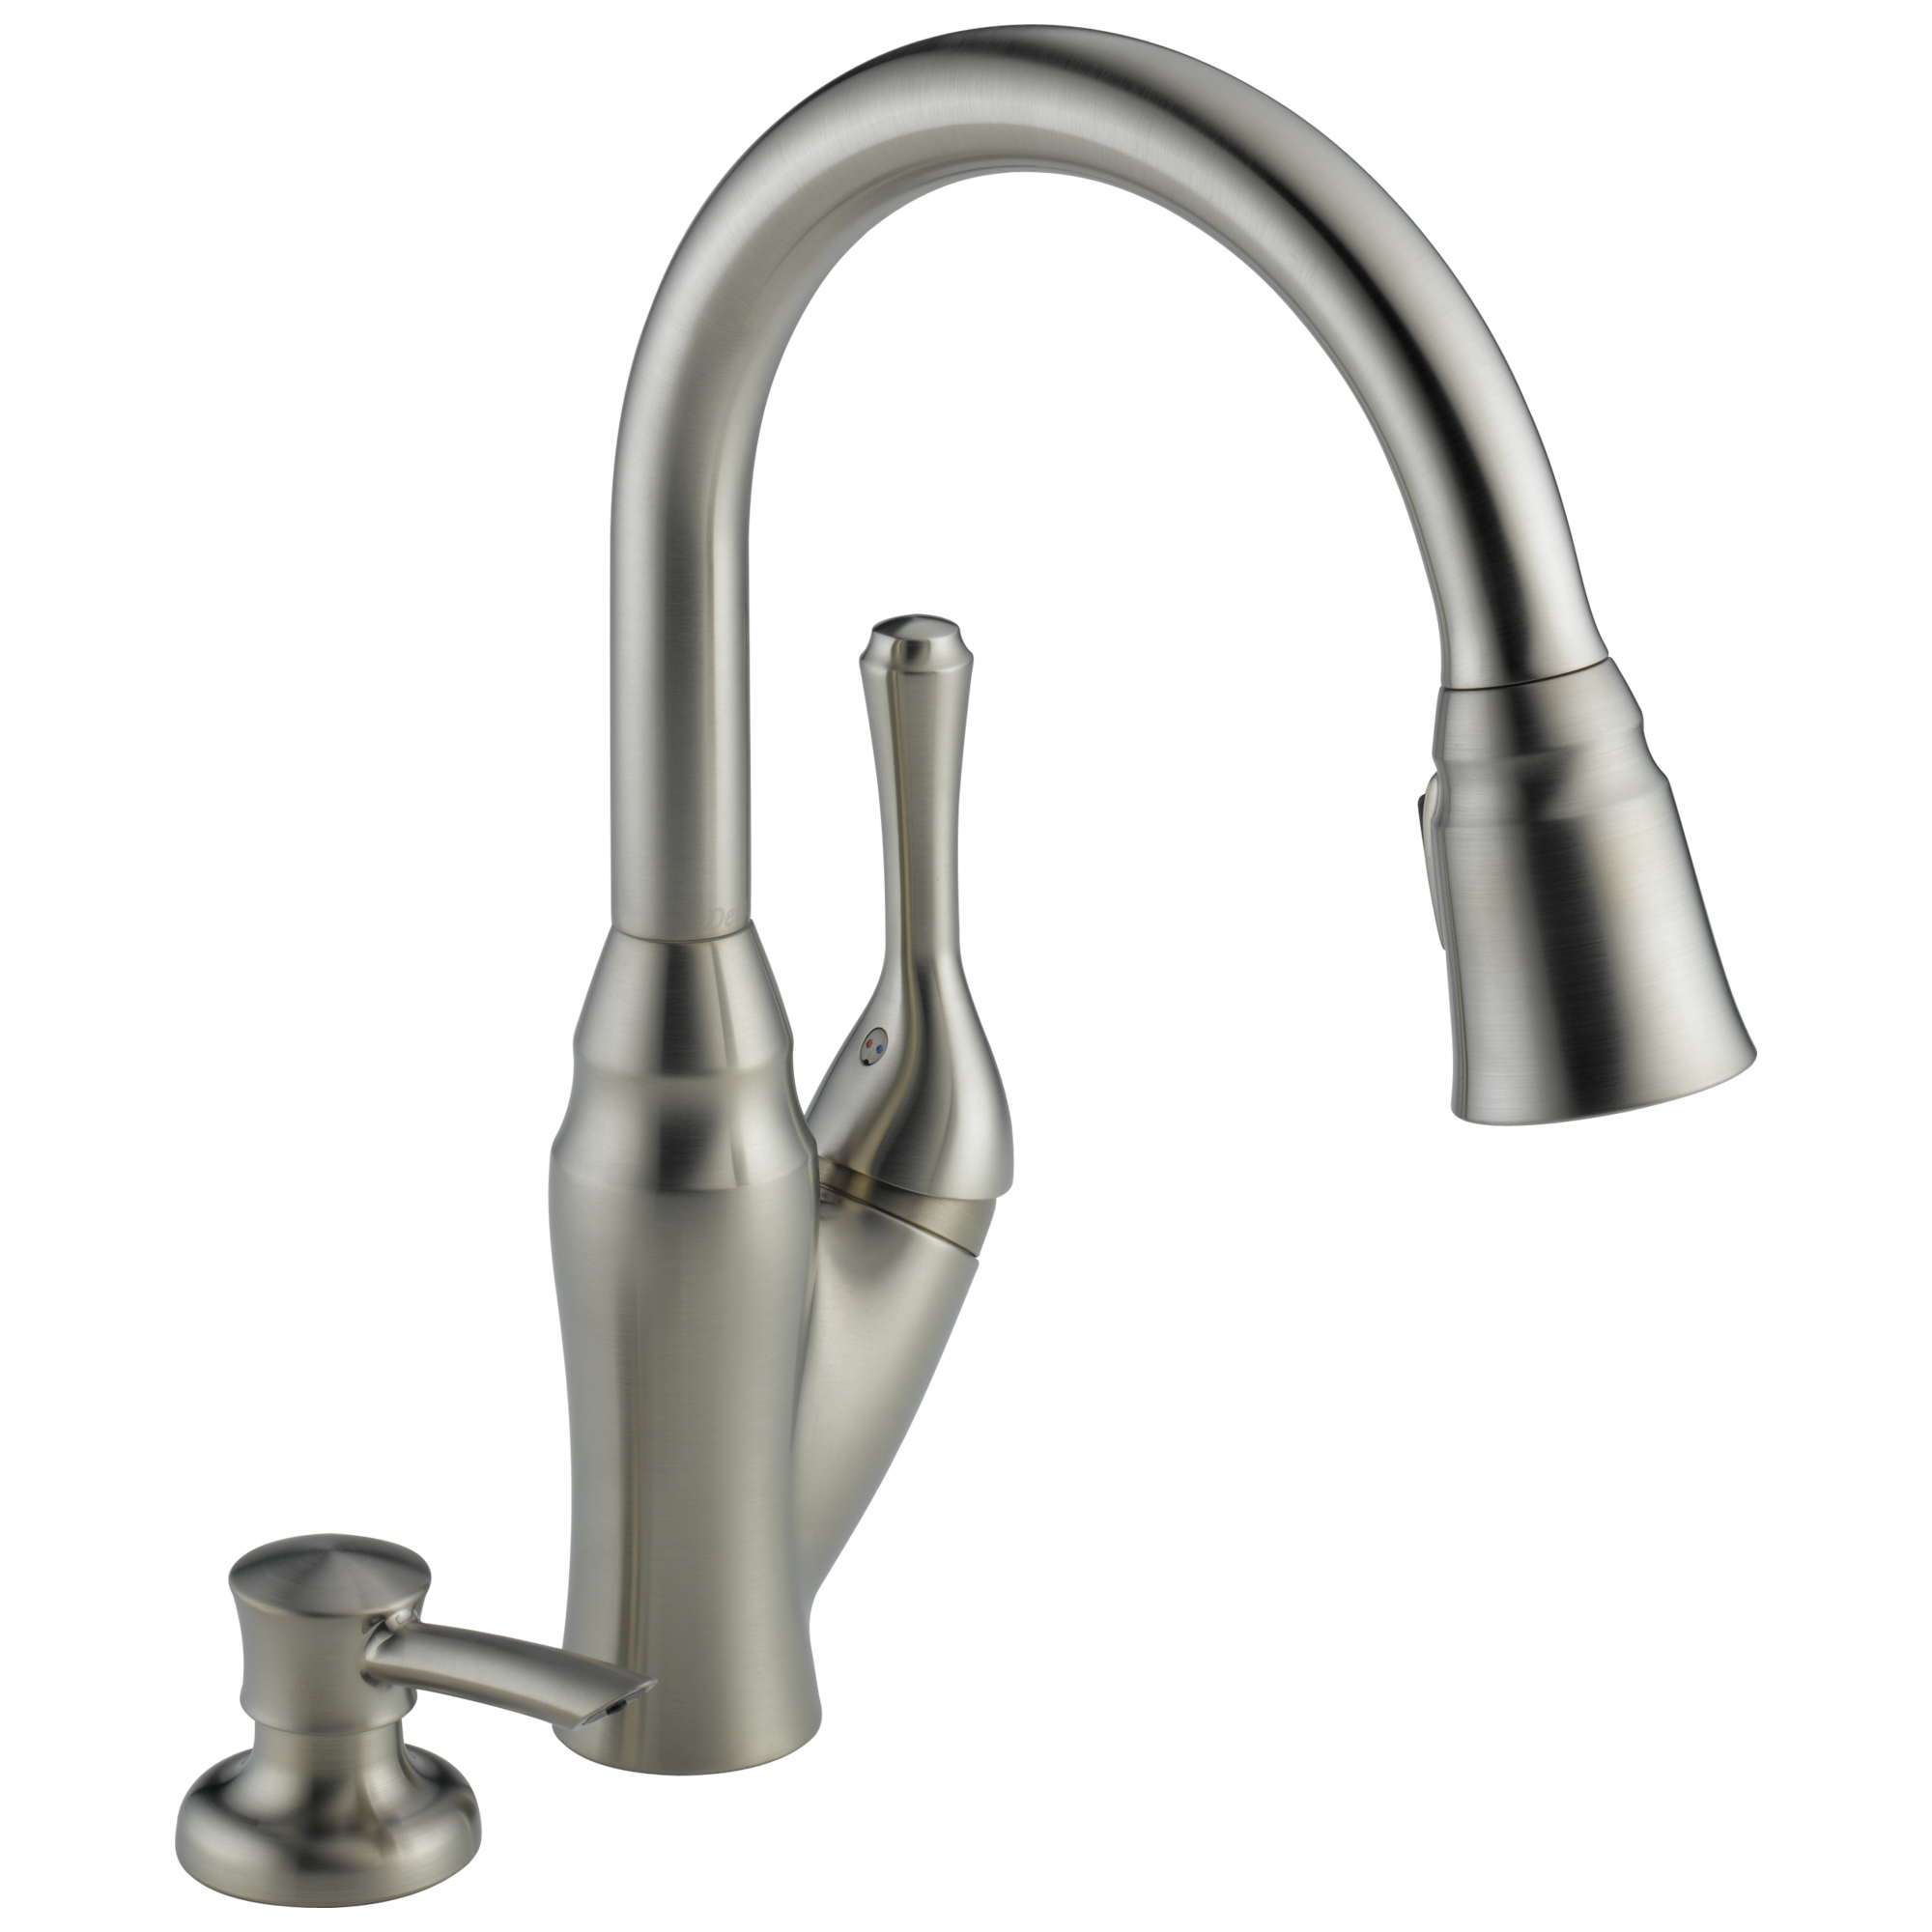 Delta Kitchen Faucet Cartridge 16971 Sssd Dst Pull Down Kitchen Faucet With Integrated Soap